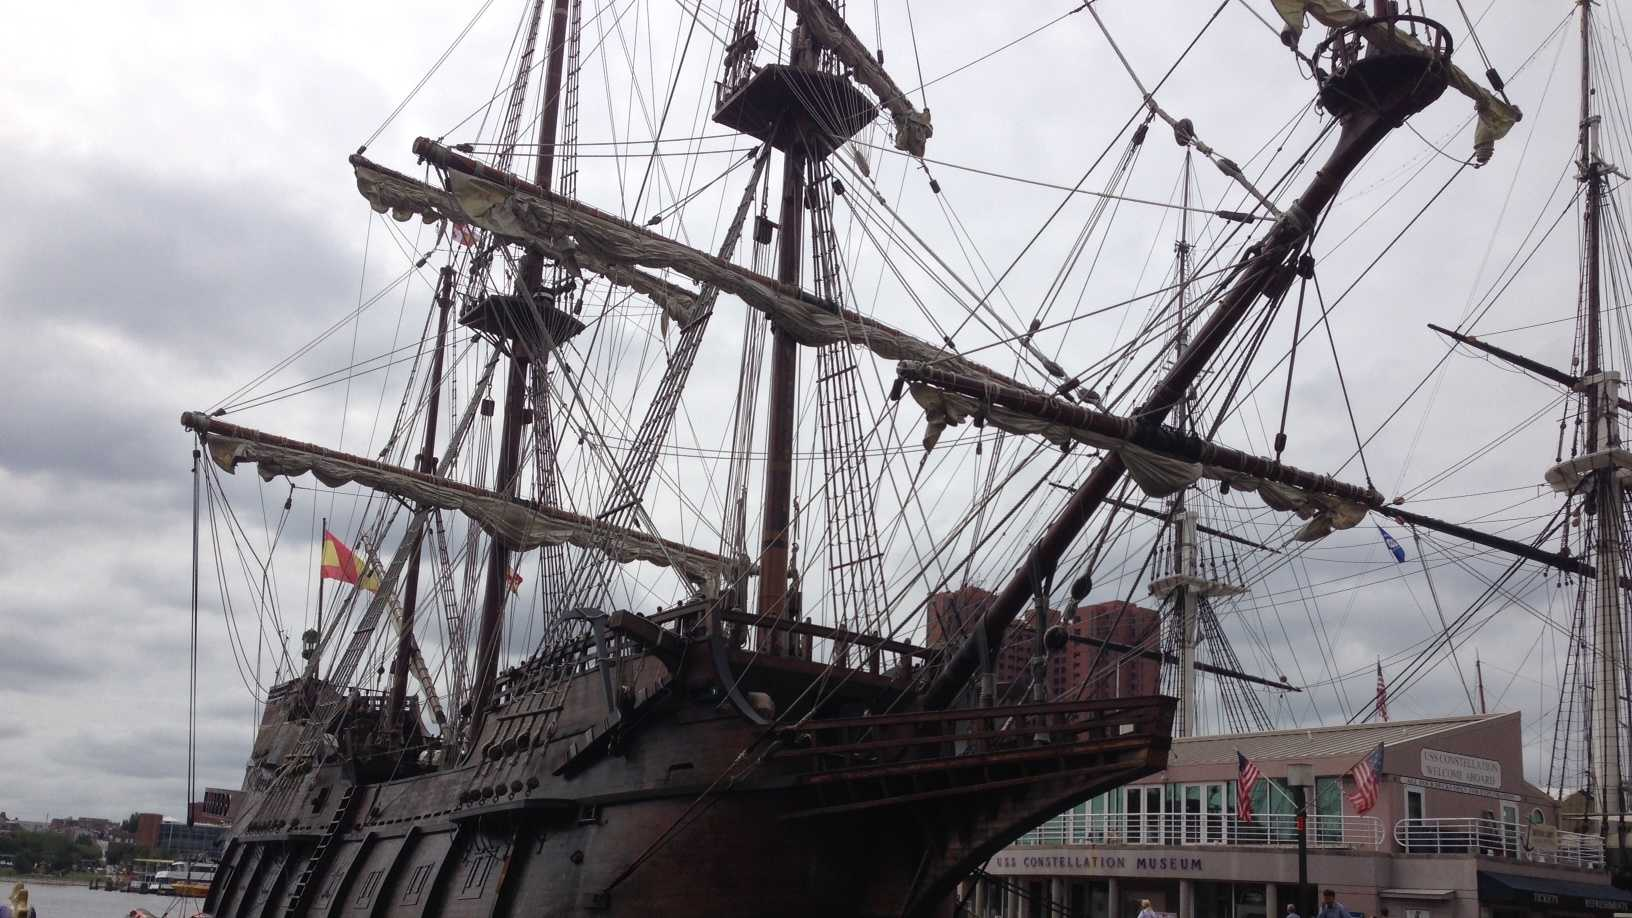 El Galeon Andalucia is a Spanish ship built in 2009. It is a replica of a ship that was used to ship goods, such as gold and spices, during the 16th century.